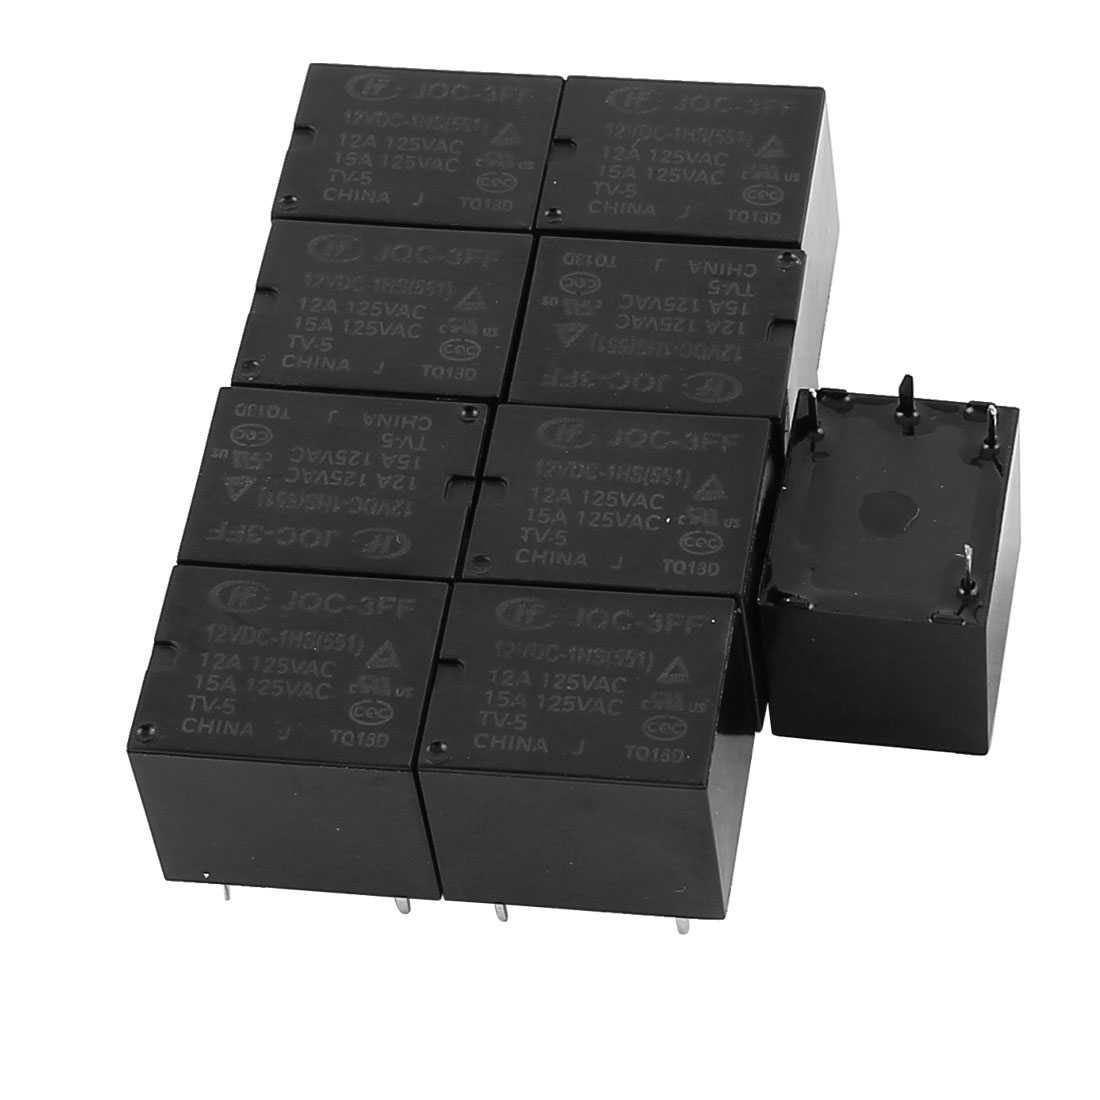 10 Pcs 12VDC 125VAC 15A 4 Pole SPST NO JQC-3FF/012-1HS(511) Power Relay